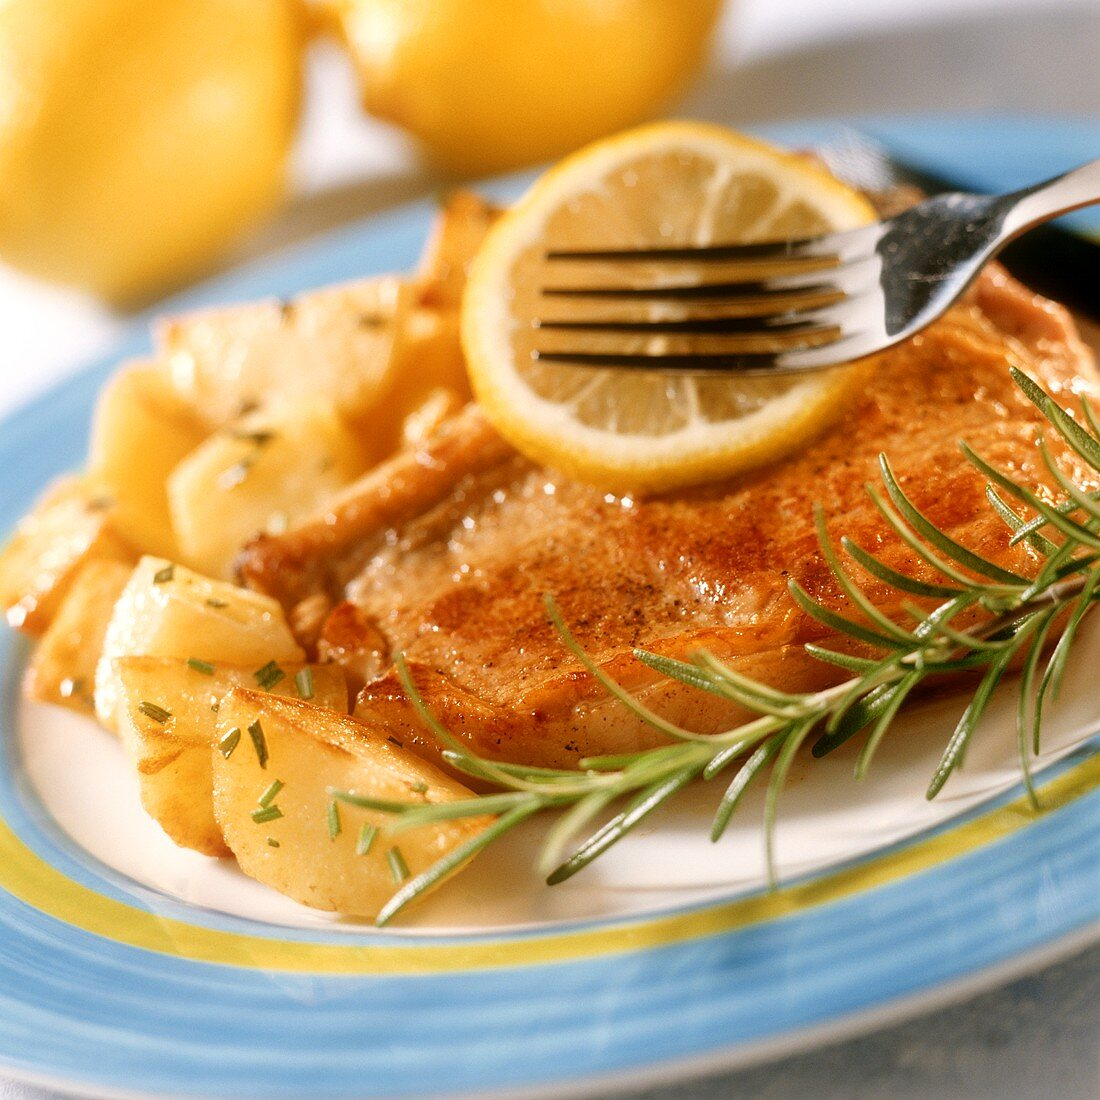 Veal cutlets with herbed potatoes and lemon slice